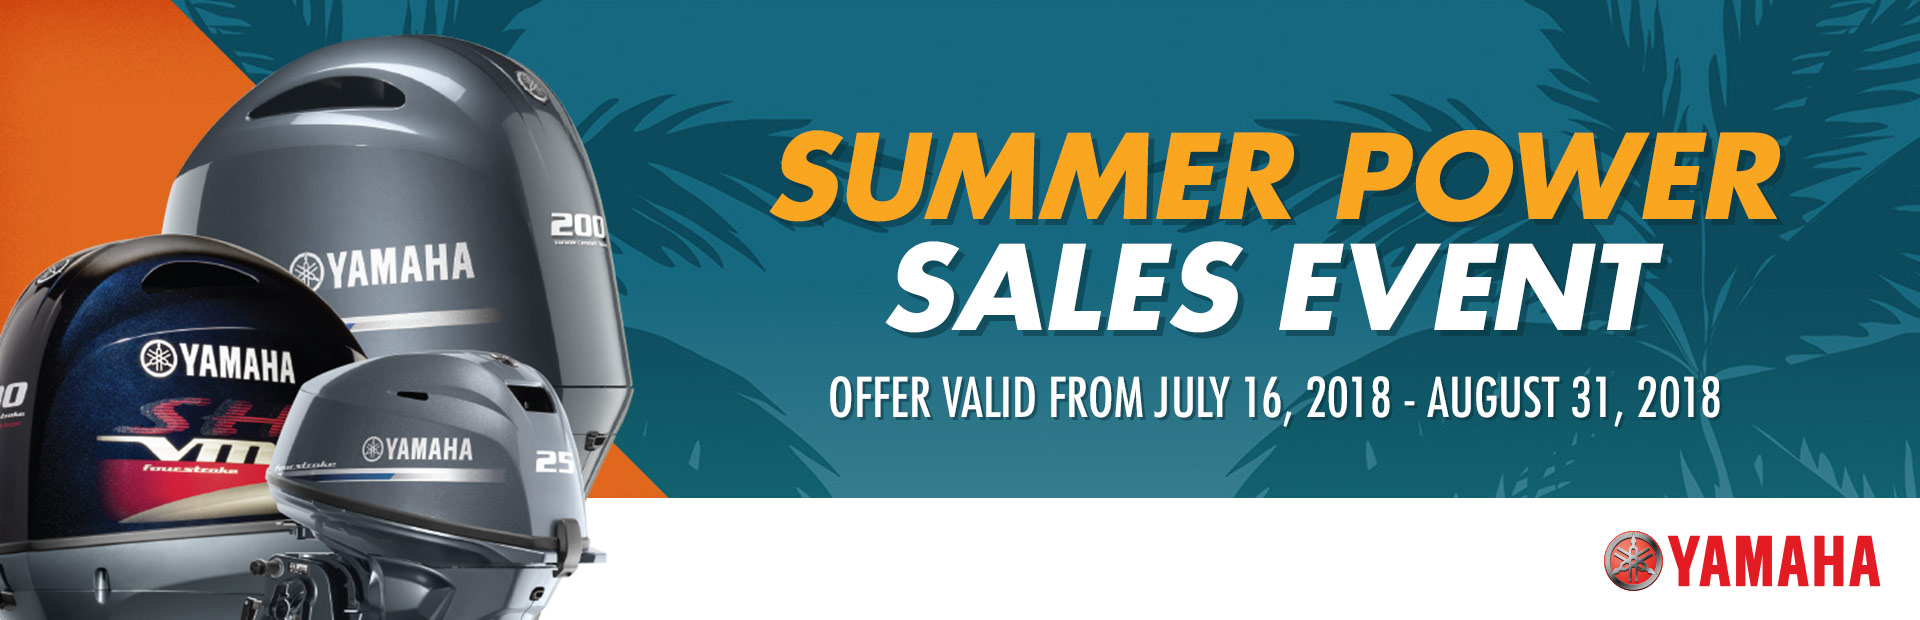 Summer Power Sales Event